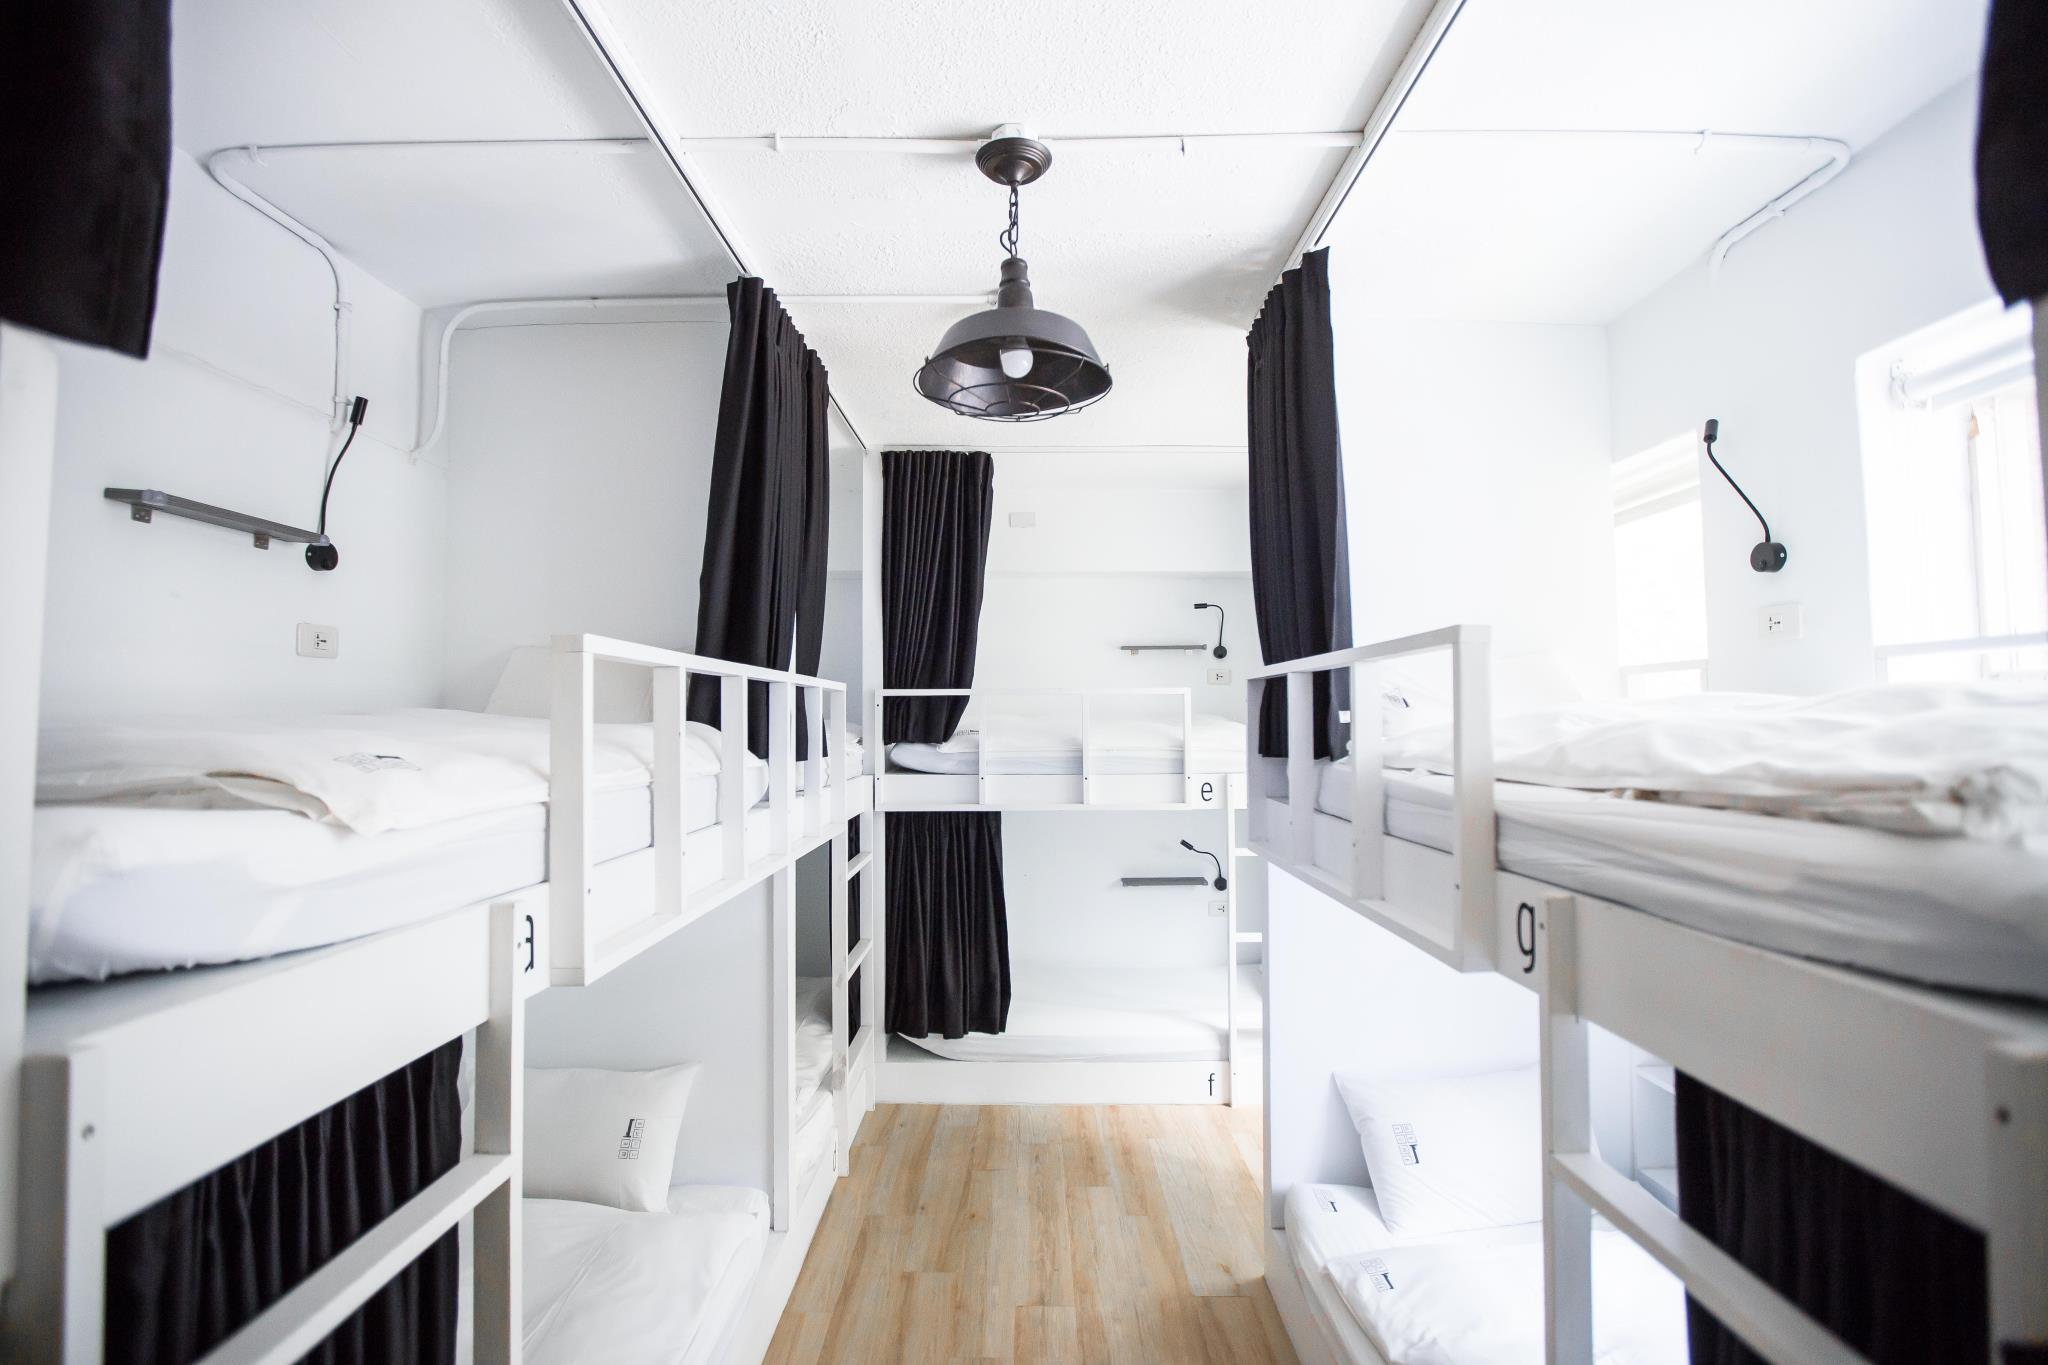 8-Bed Mixed Dormitory with Shared Bathroom